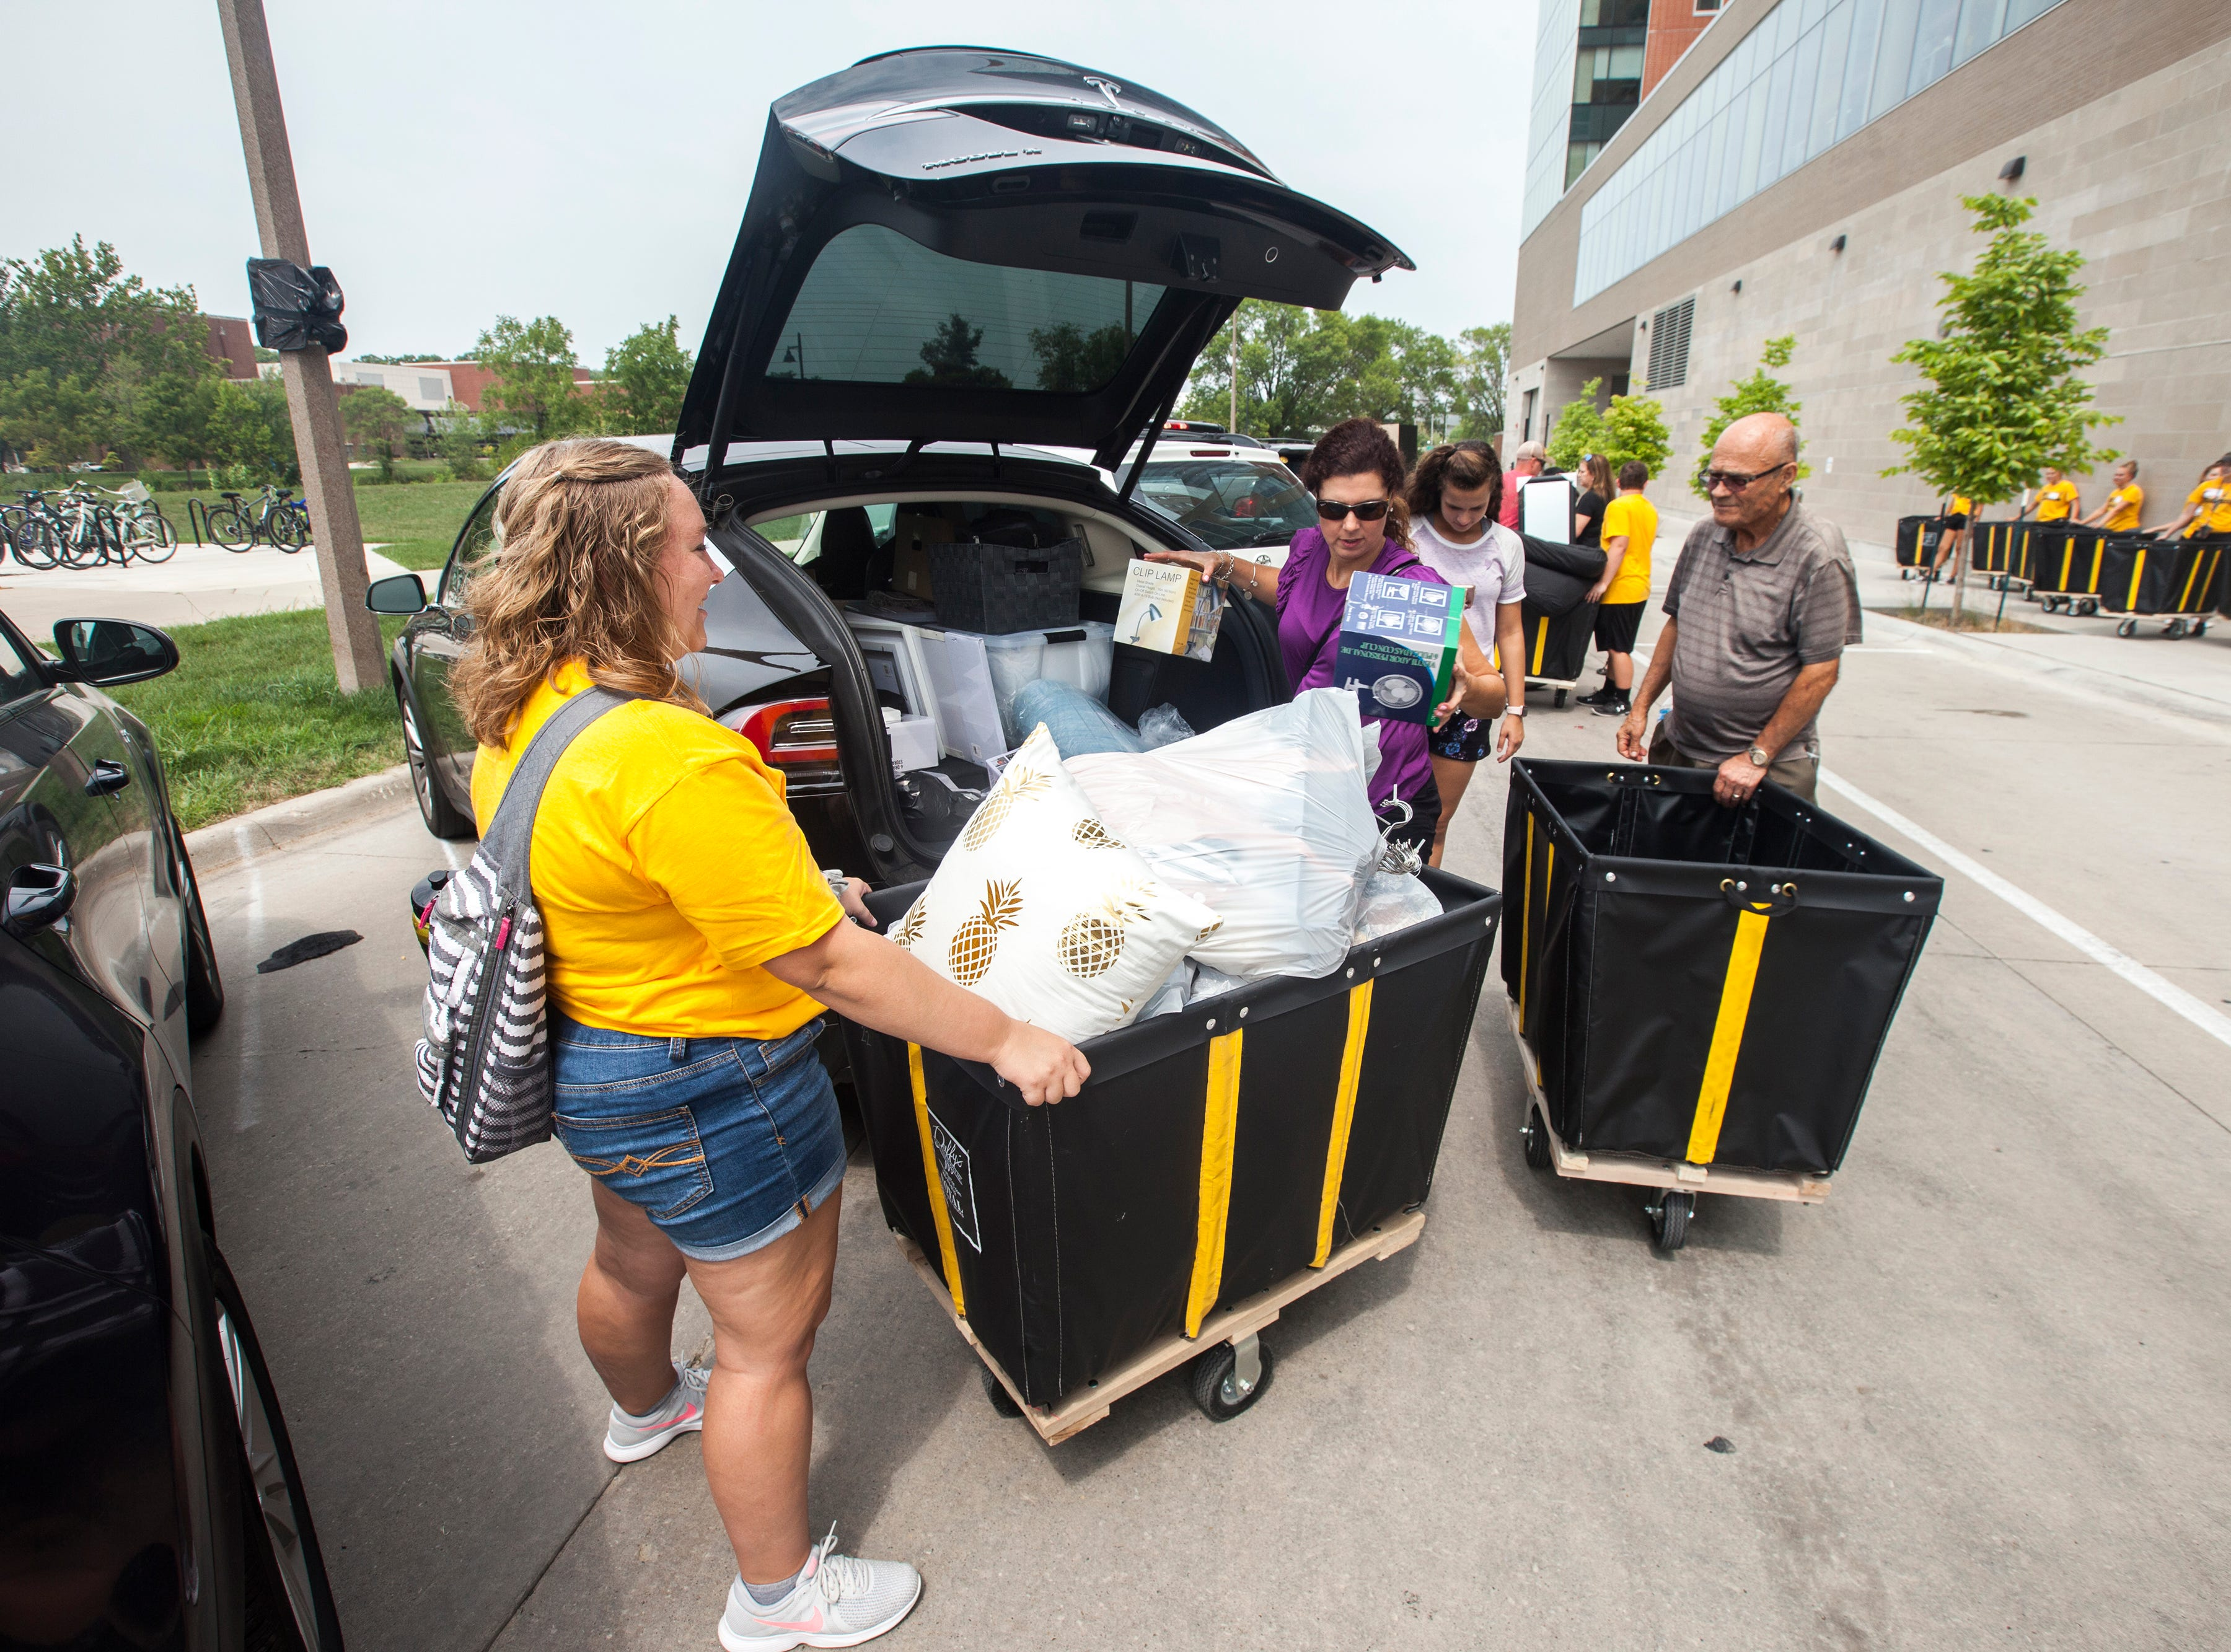 Lindsay Hippen, of Washington, Iowa helps a family at Catlett Residence Hall during new student move-in on Tuesday, Aug. 14, 2018, on the University of Iowa campus in Iowa City. Hippen is a sophomore studying english and creative writing and is a first year OnIowa leader.